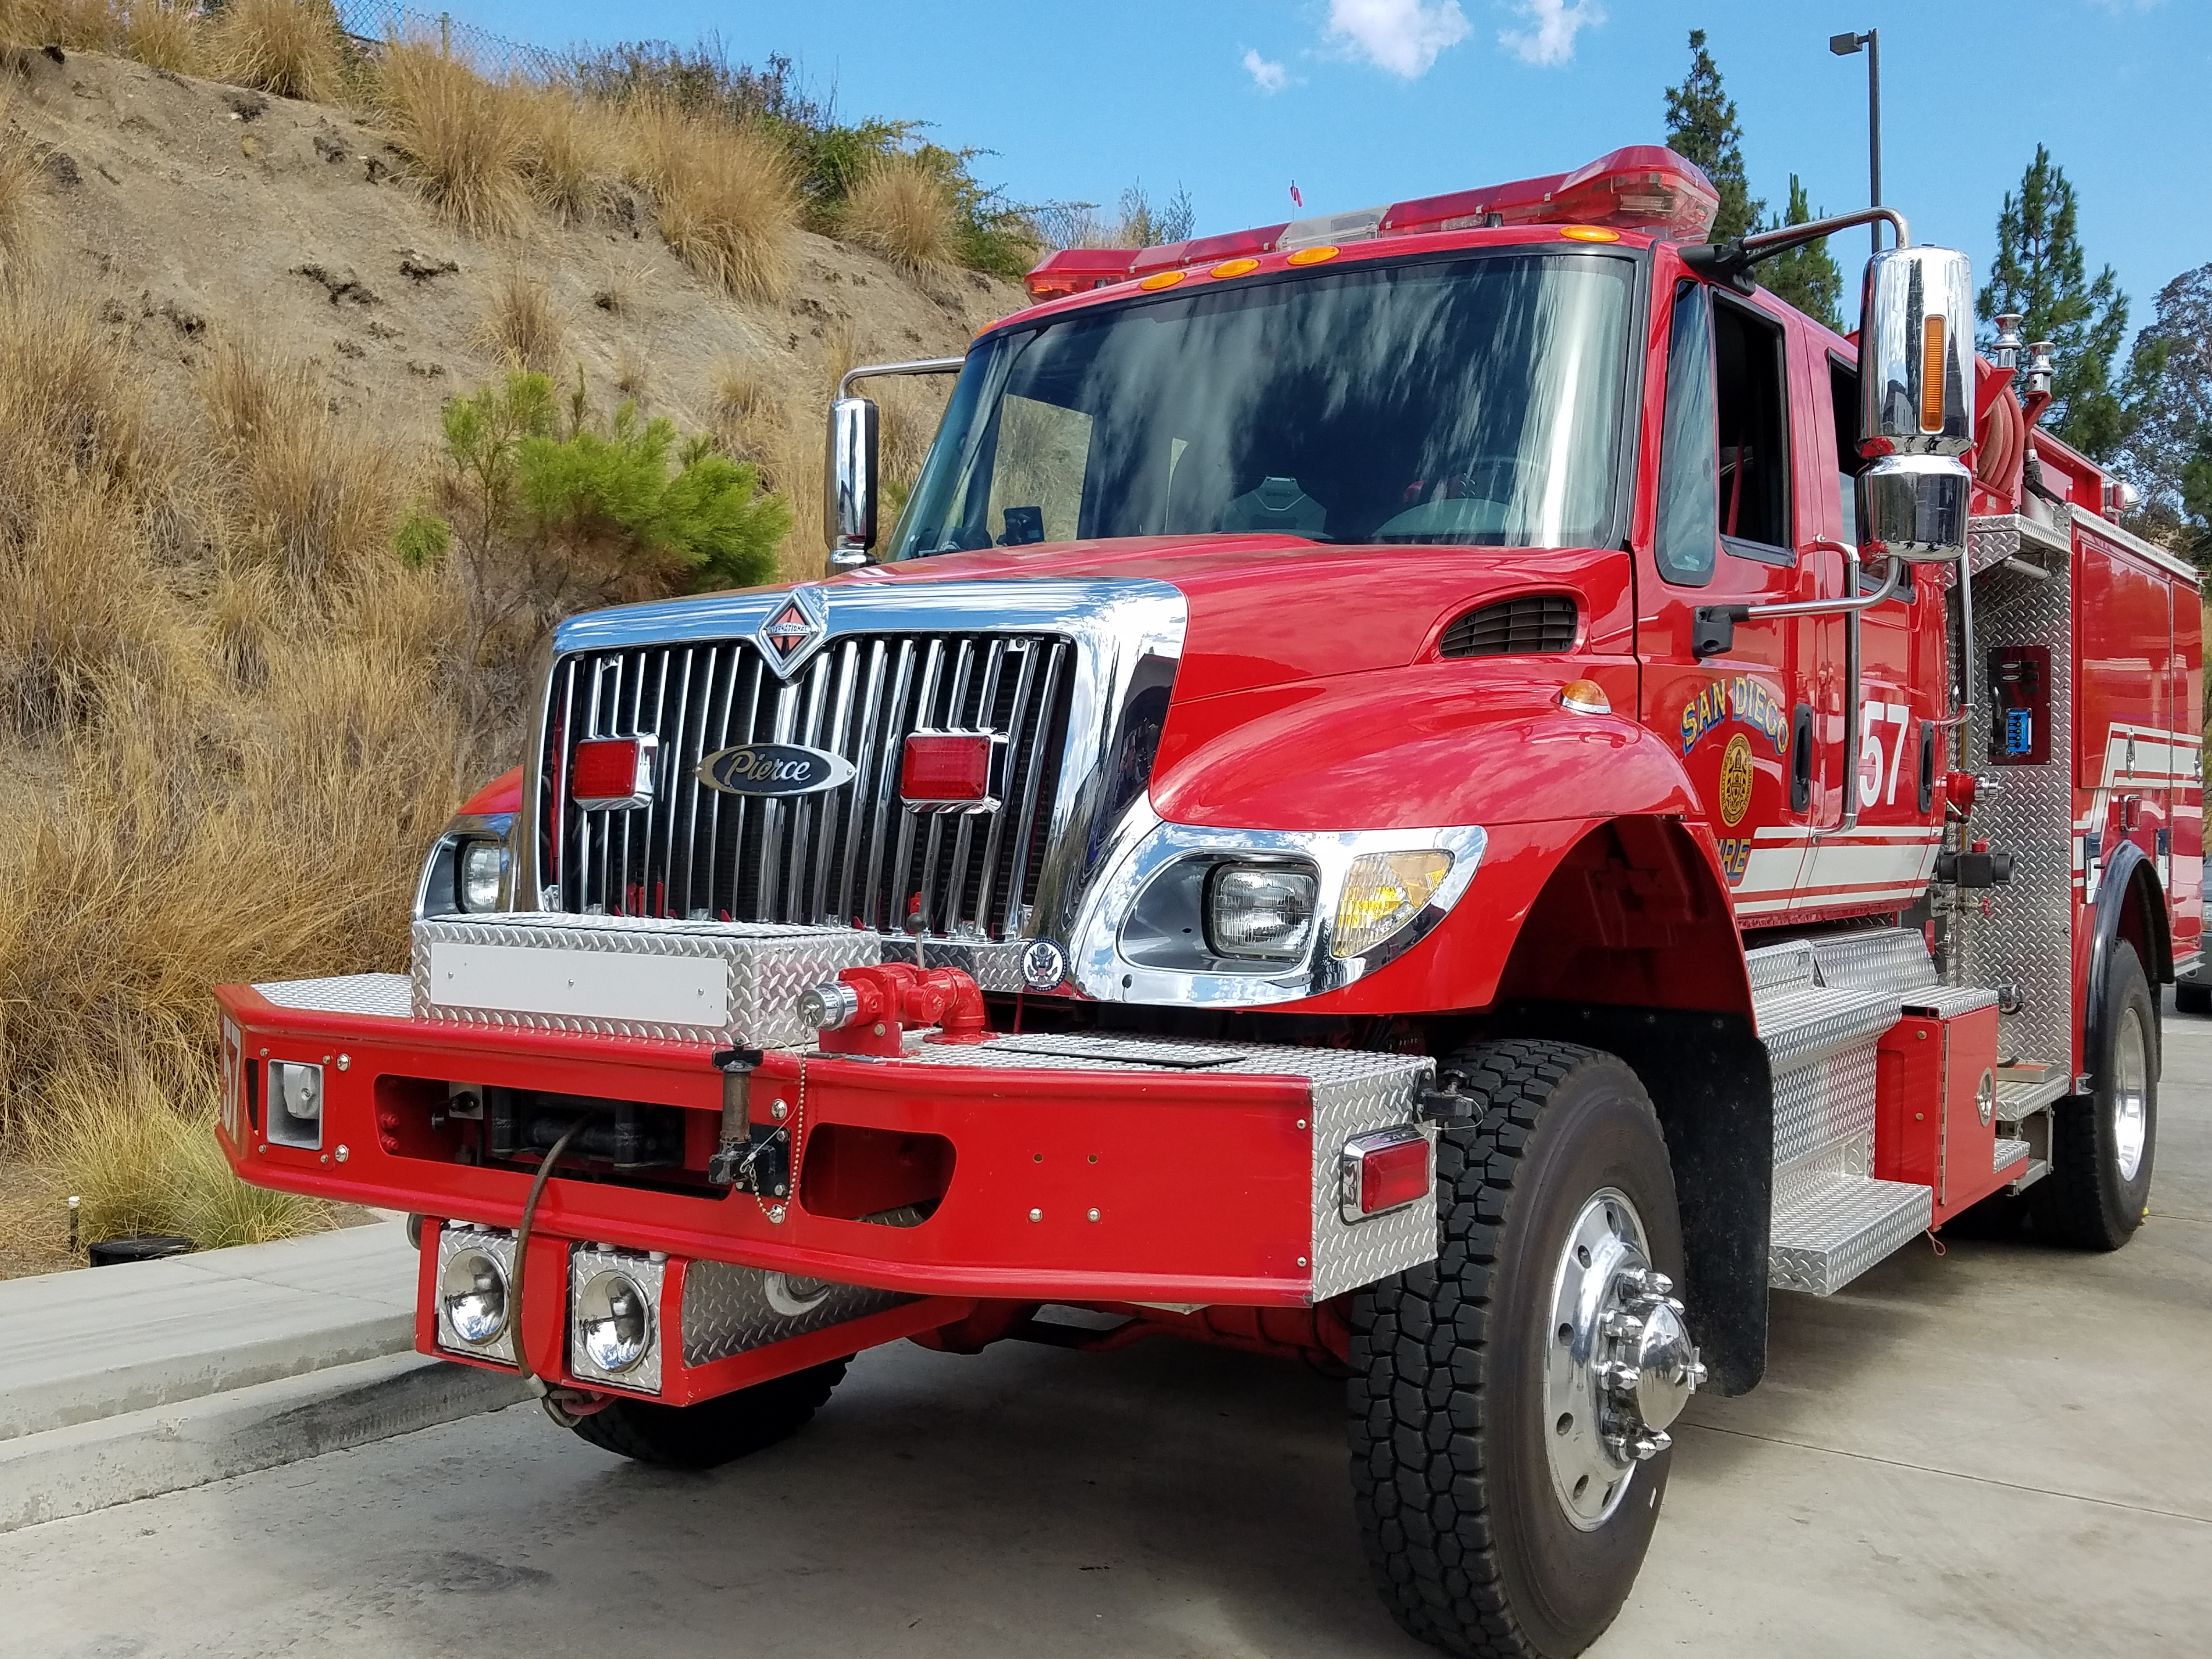 Brush Fire Engine #57 Serving San Pasqual Valley